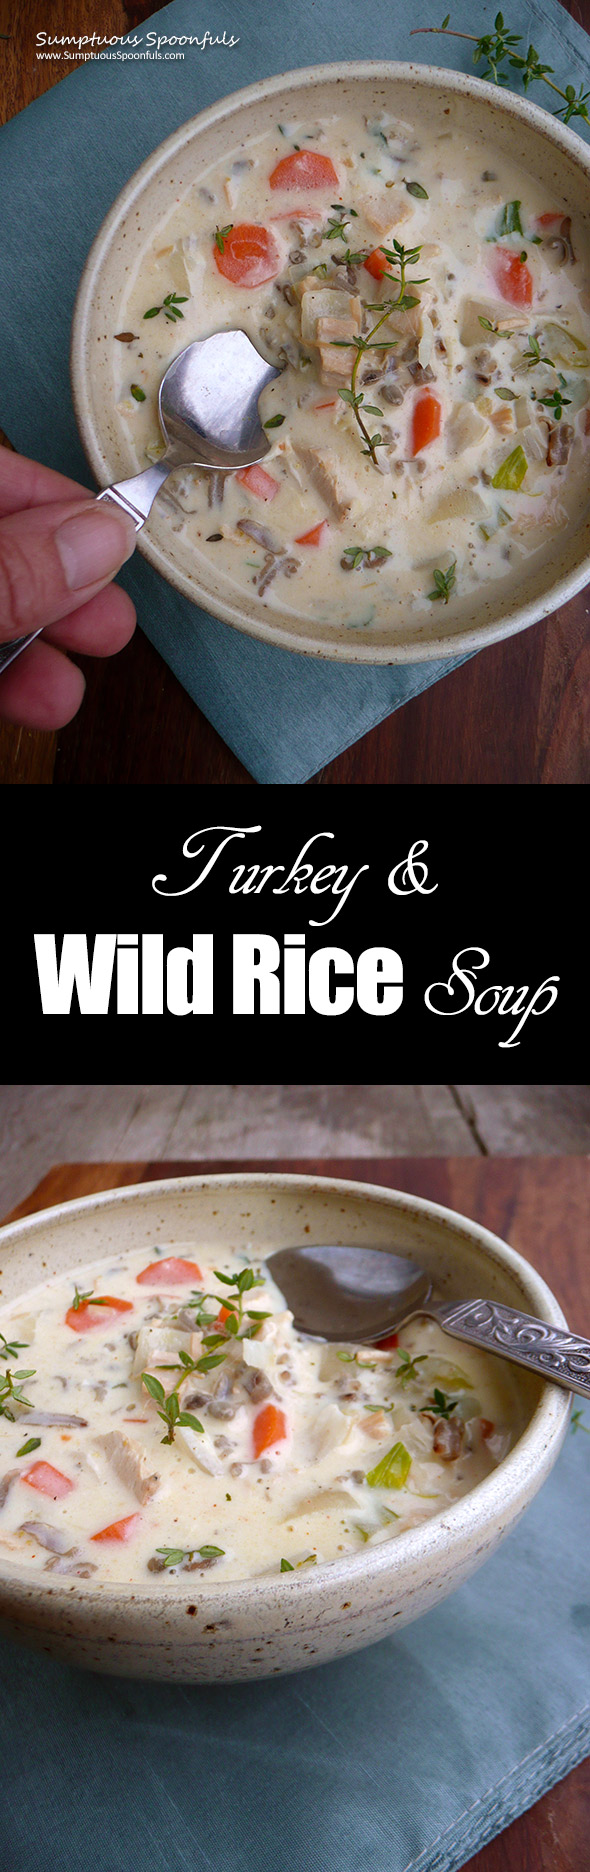 Turkey Wild Rice Soup ~ Sumptuous Spoonfuls #chicken #wildrice #soup #recipe